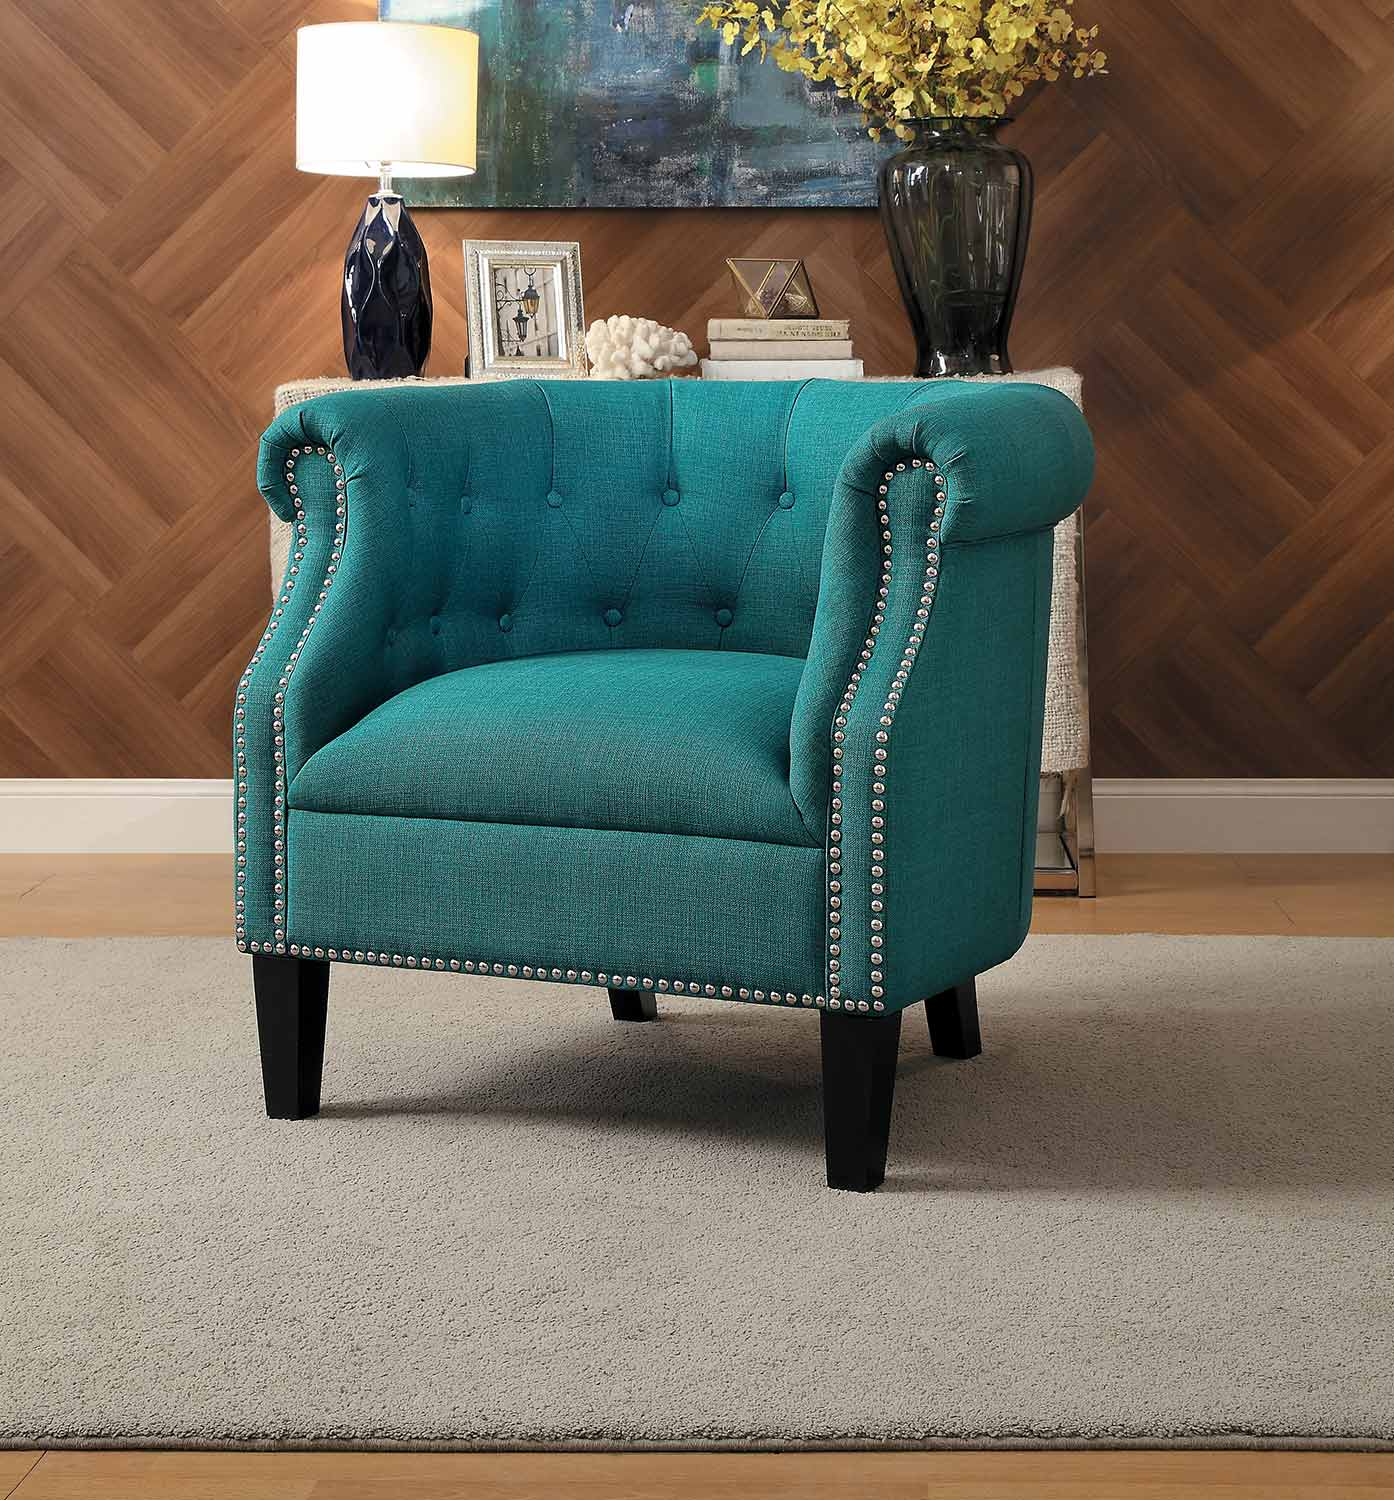 Homelegance Karlock Accent Chair - Teal